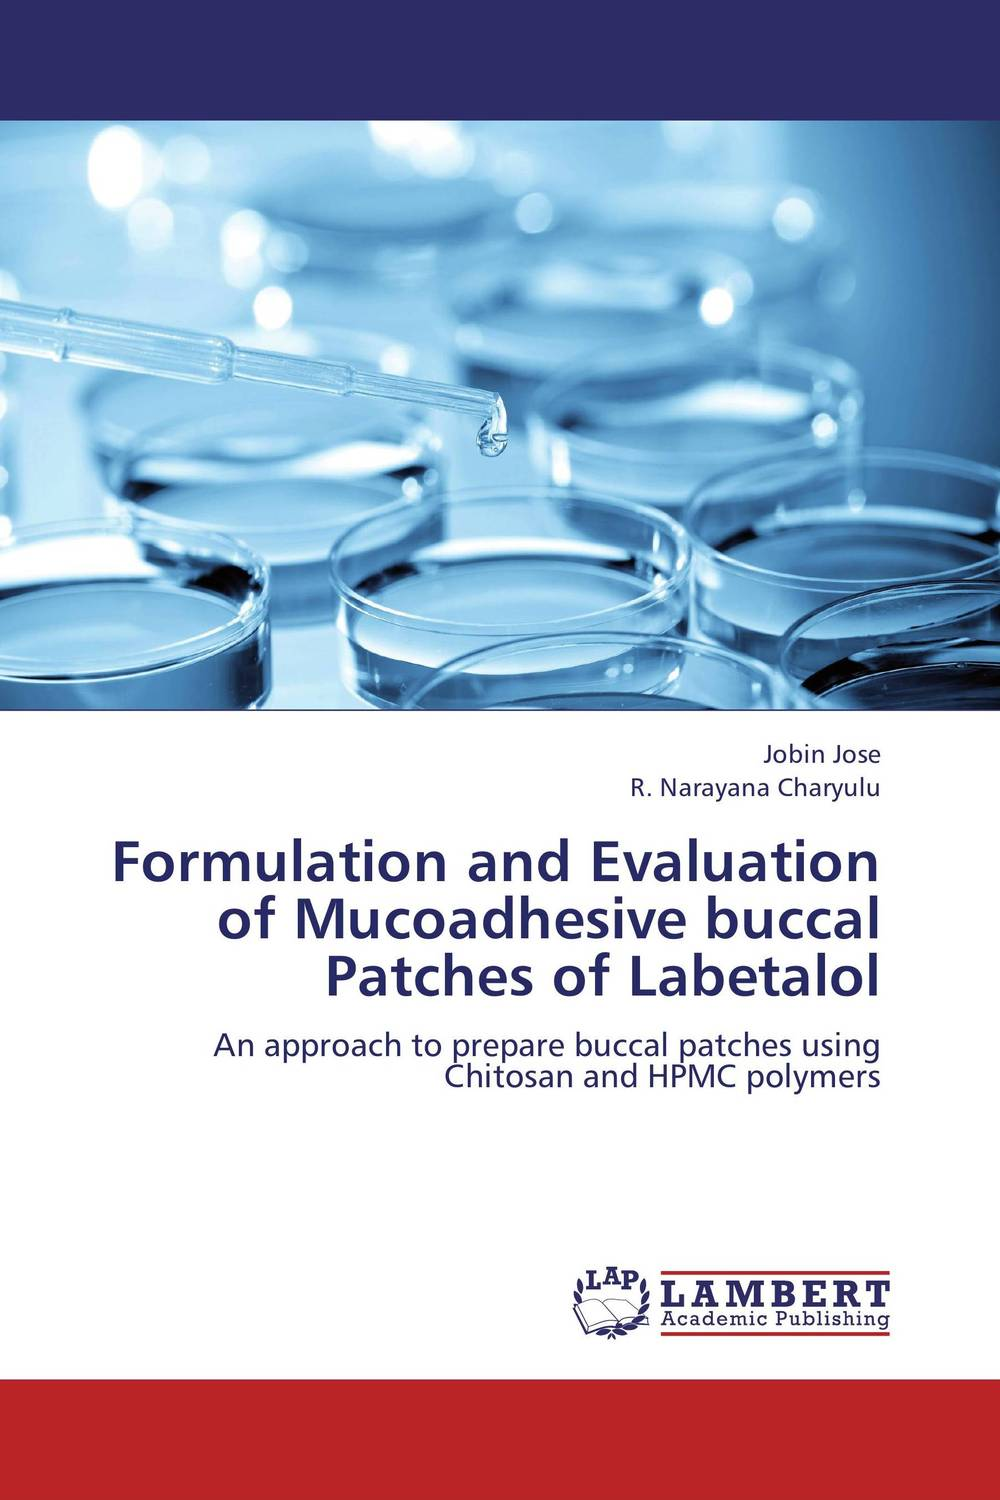 Formulation and Evaluation of Mucoadhesive buccal Patches of Labetalol dhaval patel and patel jayvadan k formulation and evalution of mucoadhesive nanosuspension for ulcer